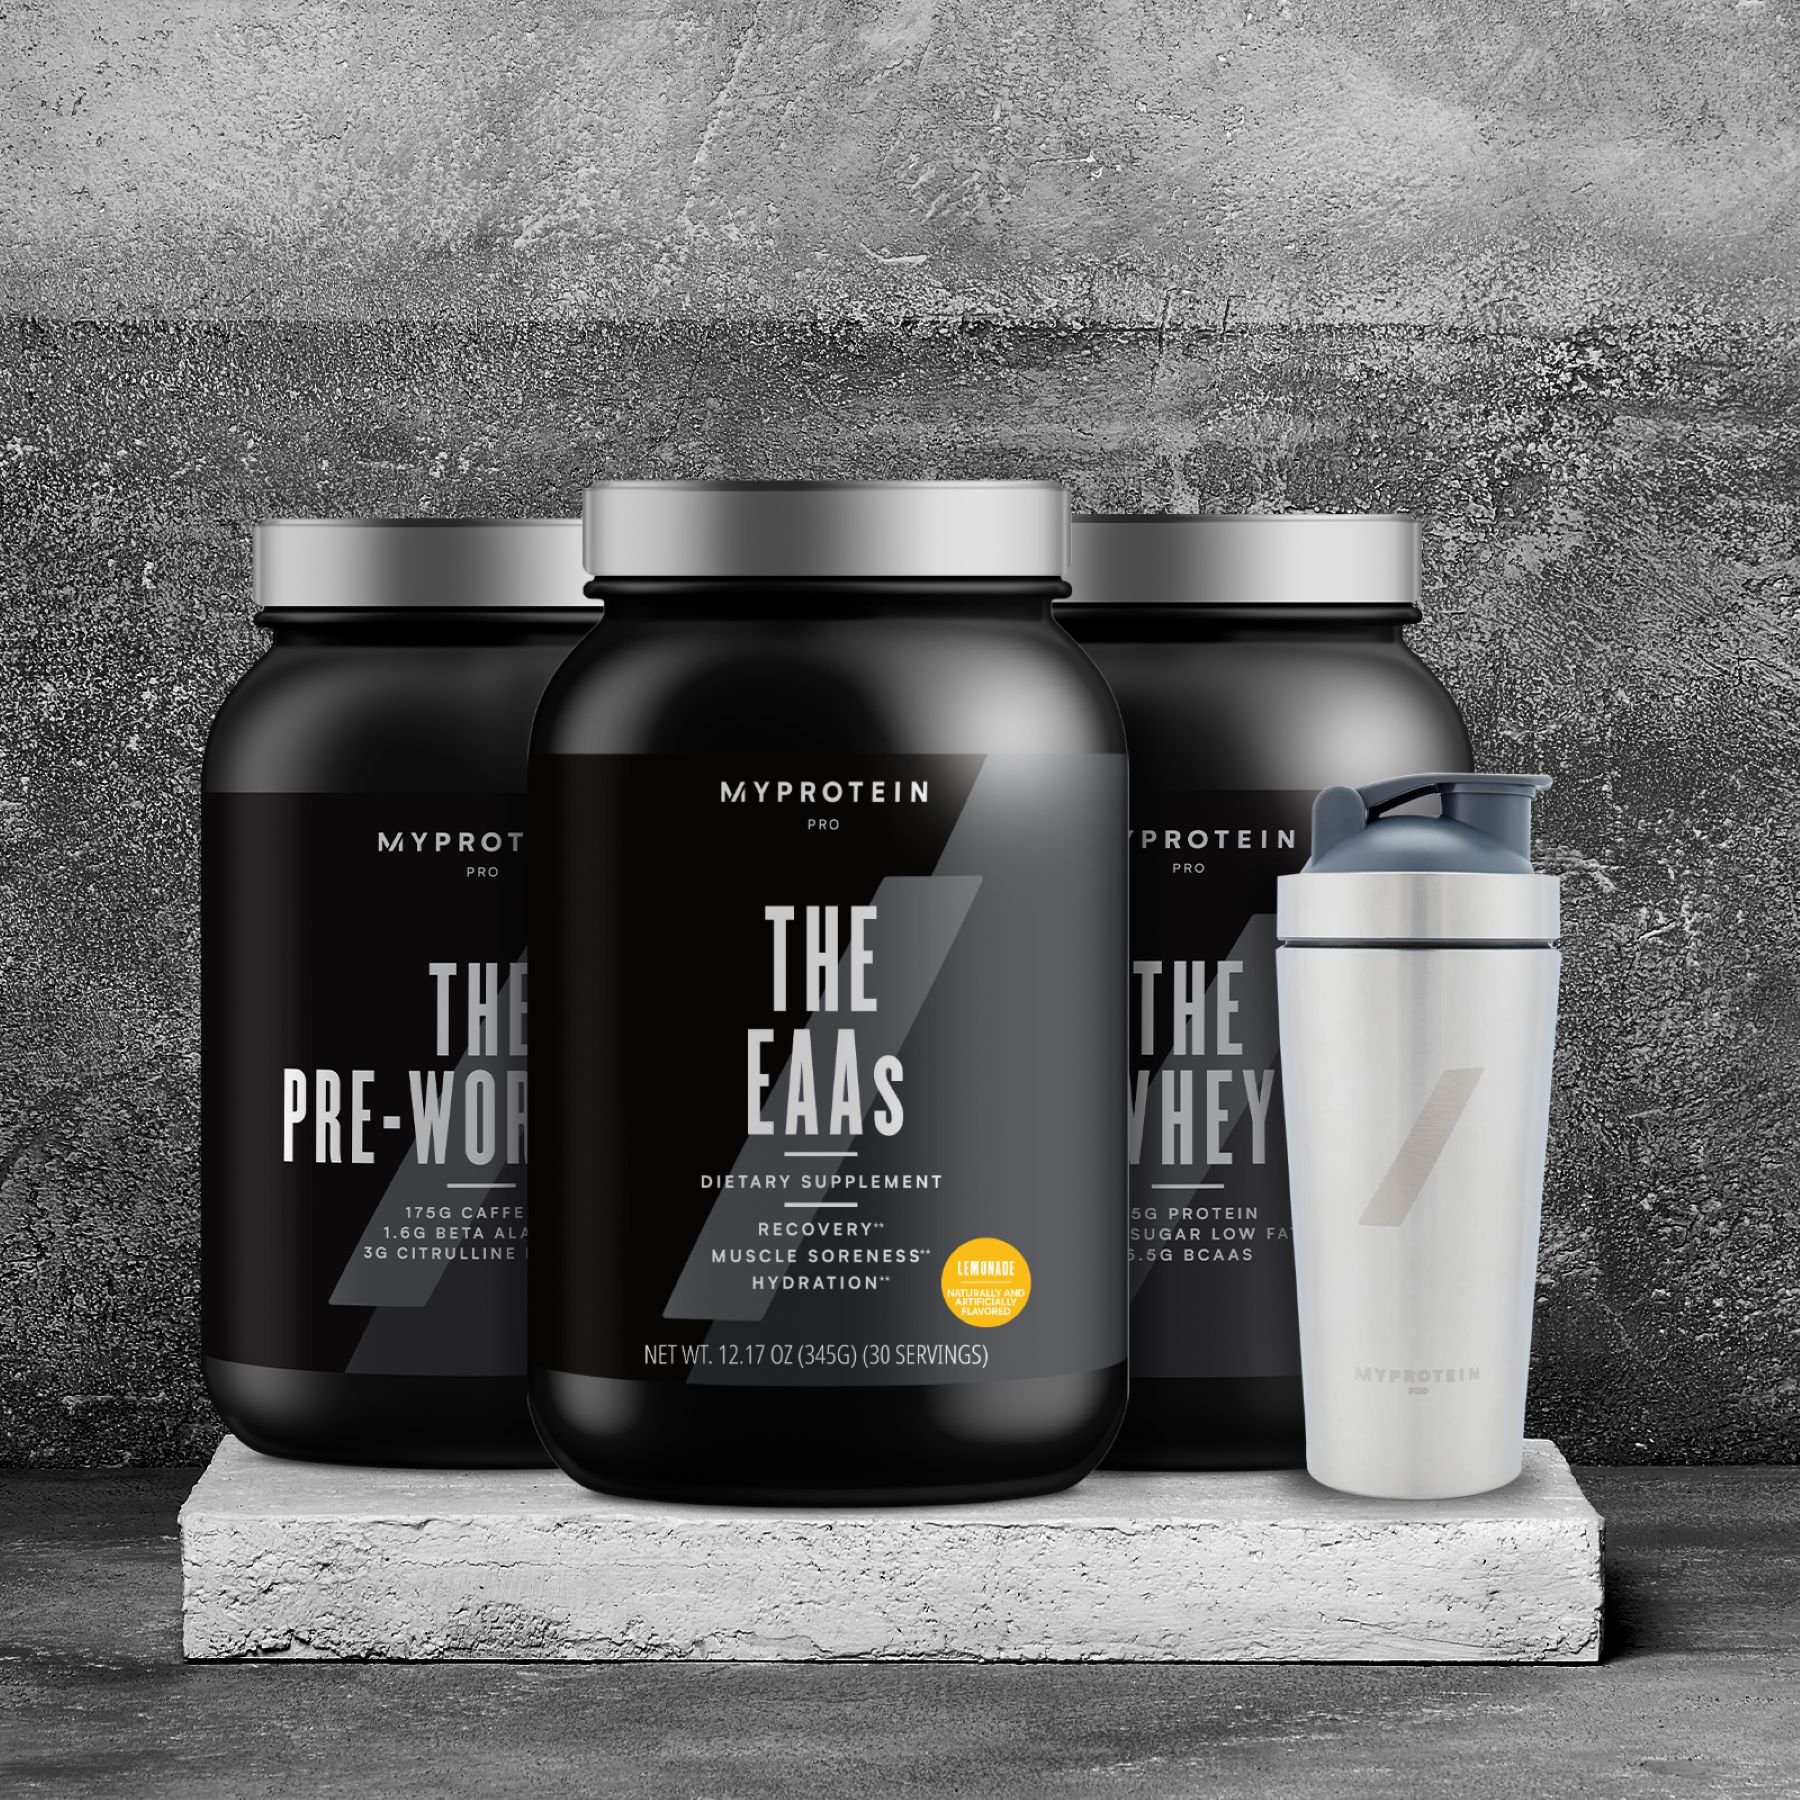 For Those Who Want Most | THE PRO Range Introduces THE EAAs & All New Pre-Workout Flavors